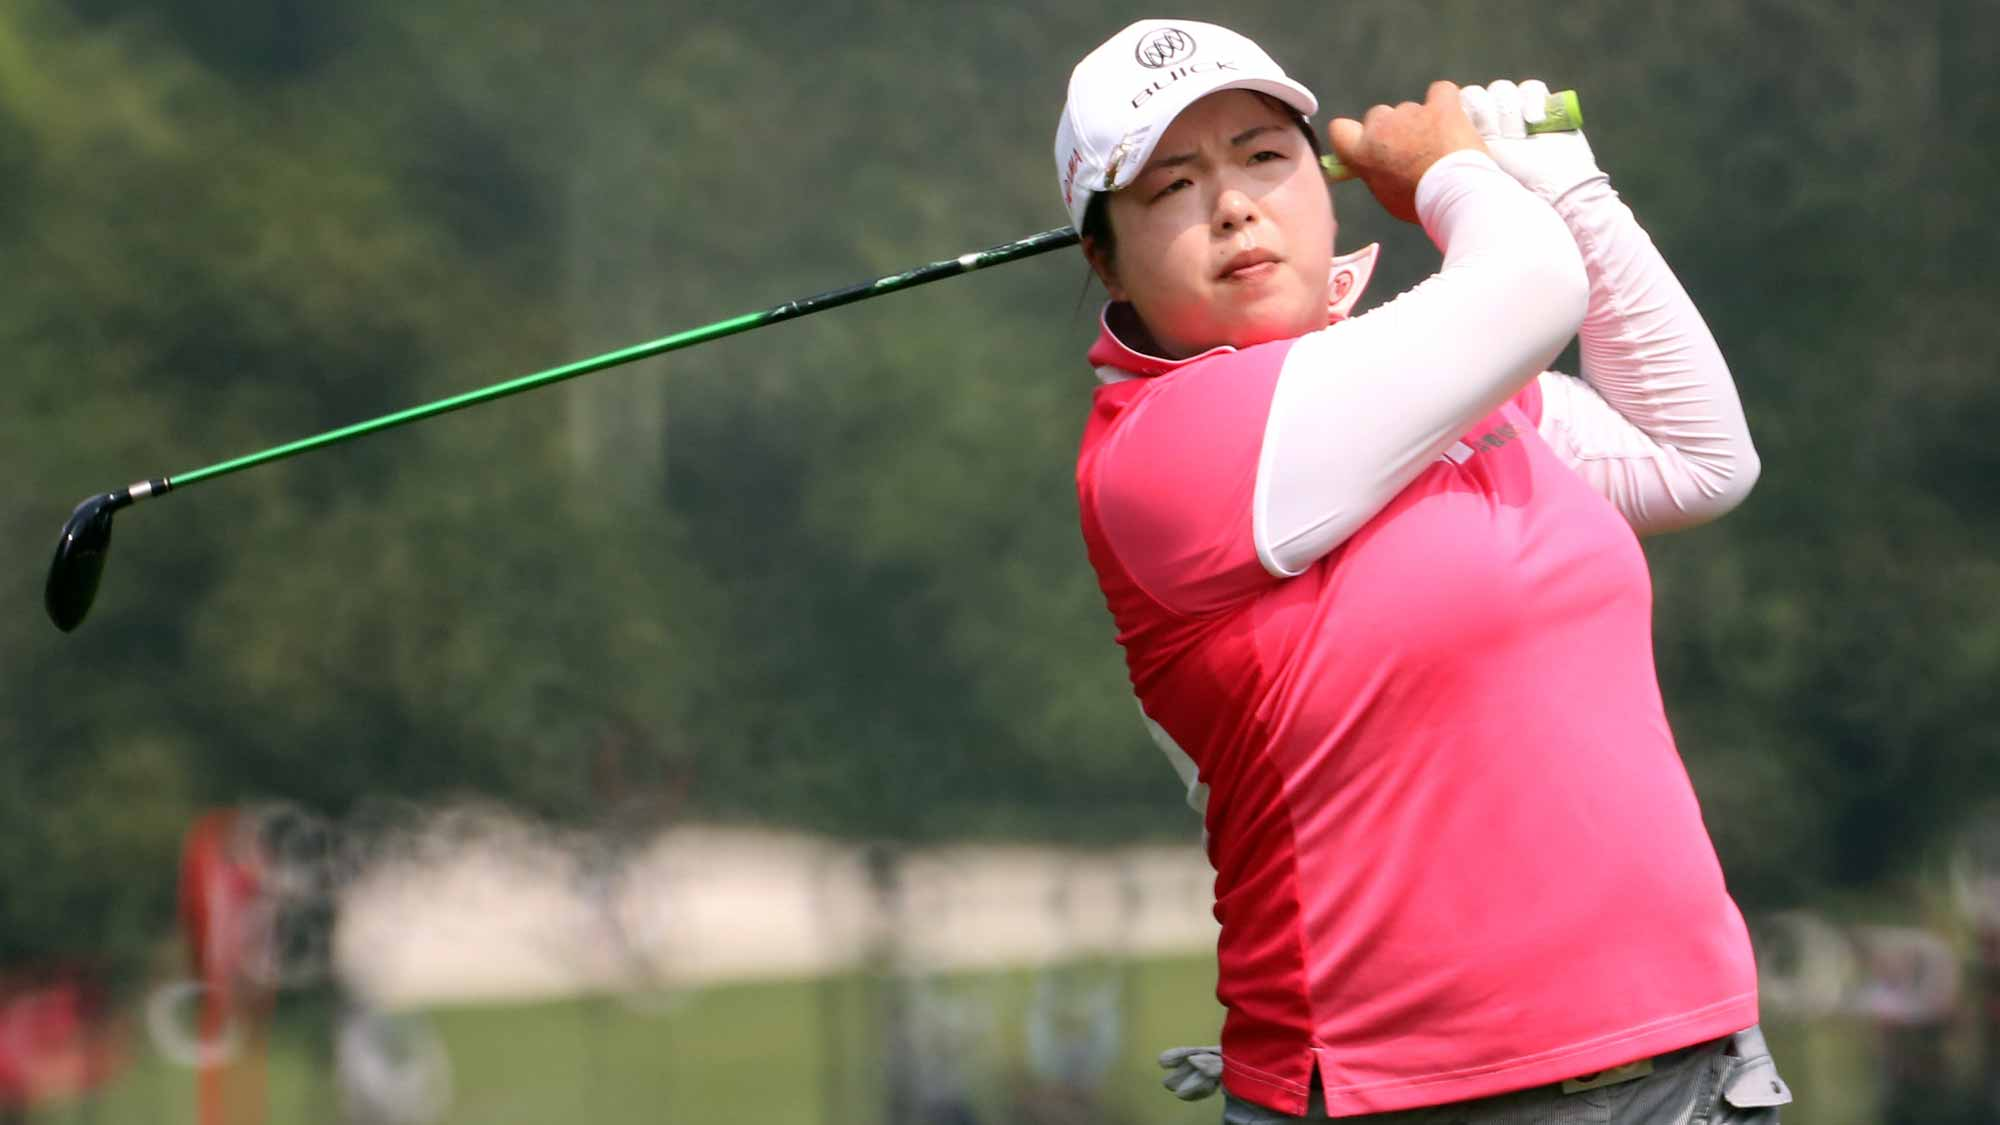 Shanshan Feng of China watches her 2nd shot on the 6th hole during round one of the Sime Darby LPGA Tour at Kuala Lumpur Golf & Country Club